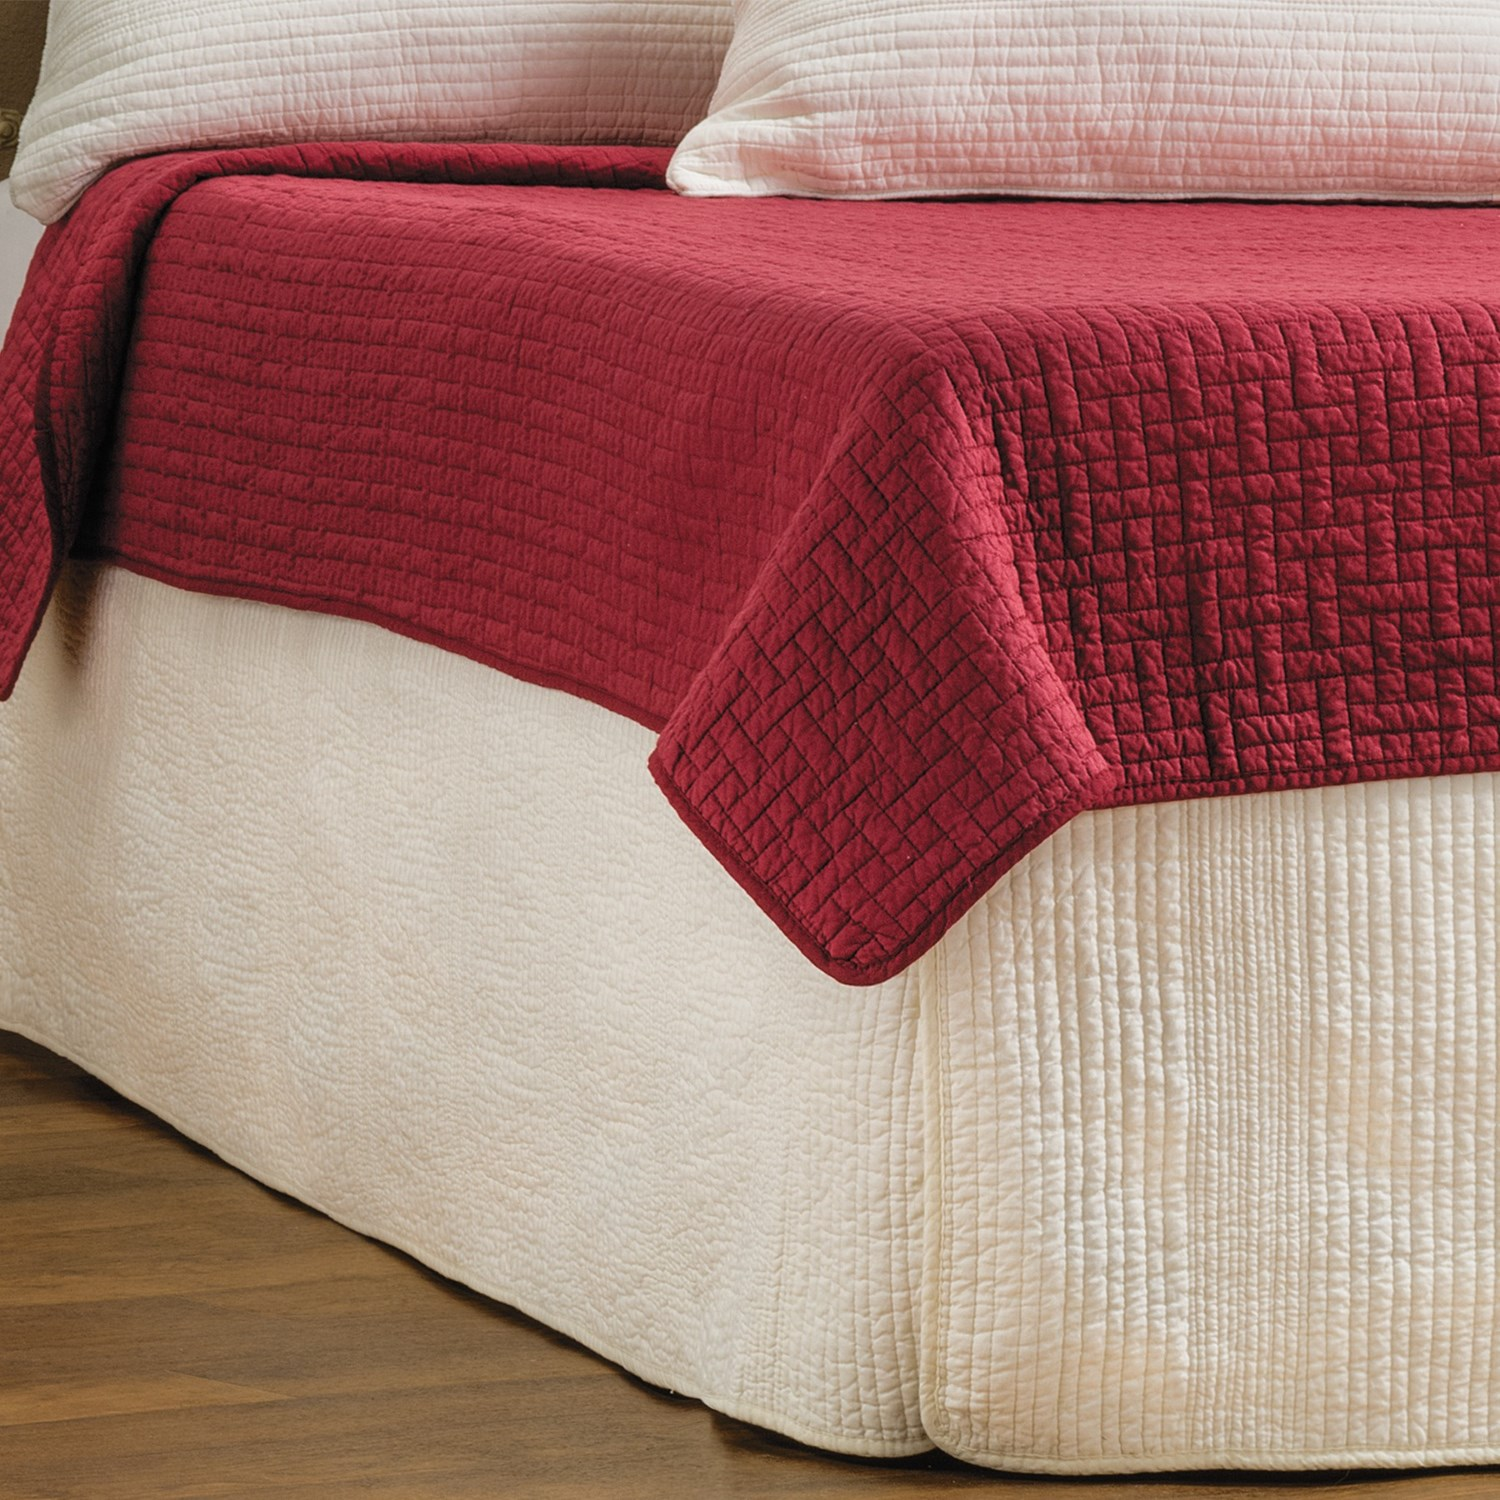 Ivy Hill Home Winslet Quilted Bed Skirt